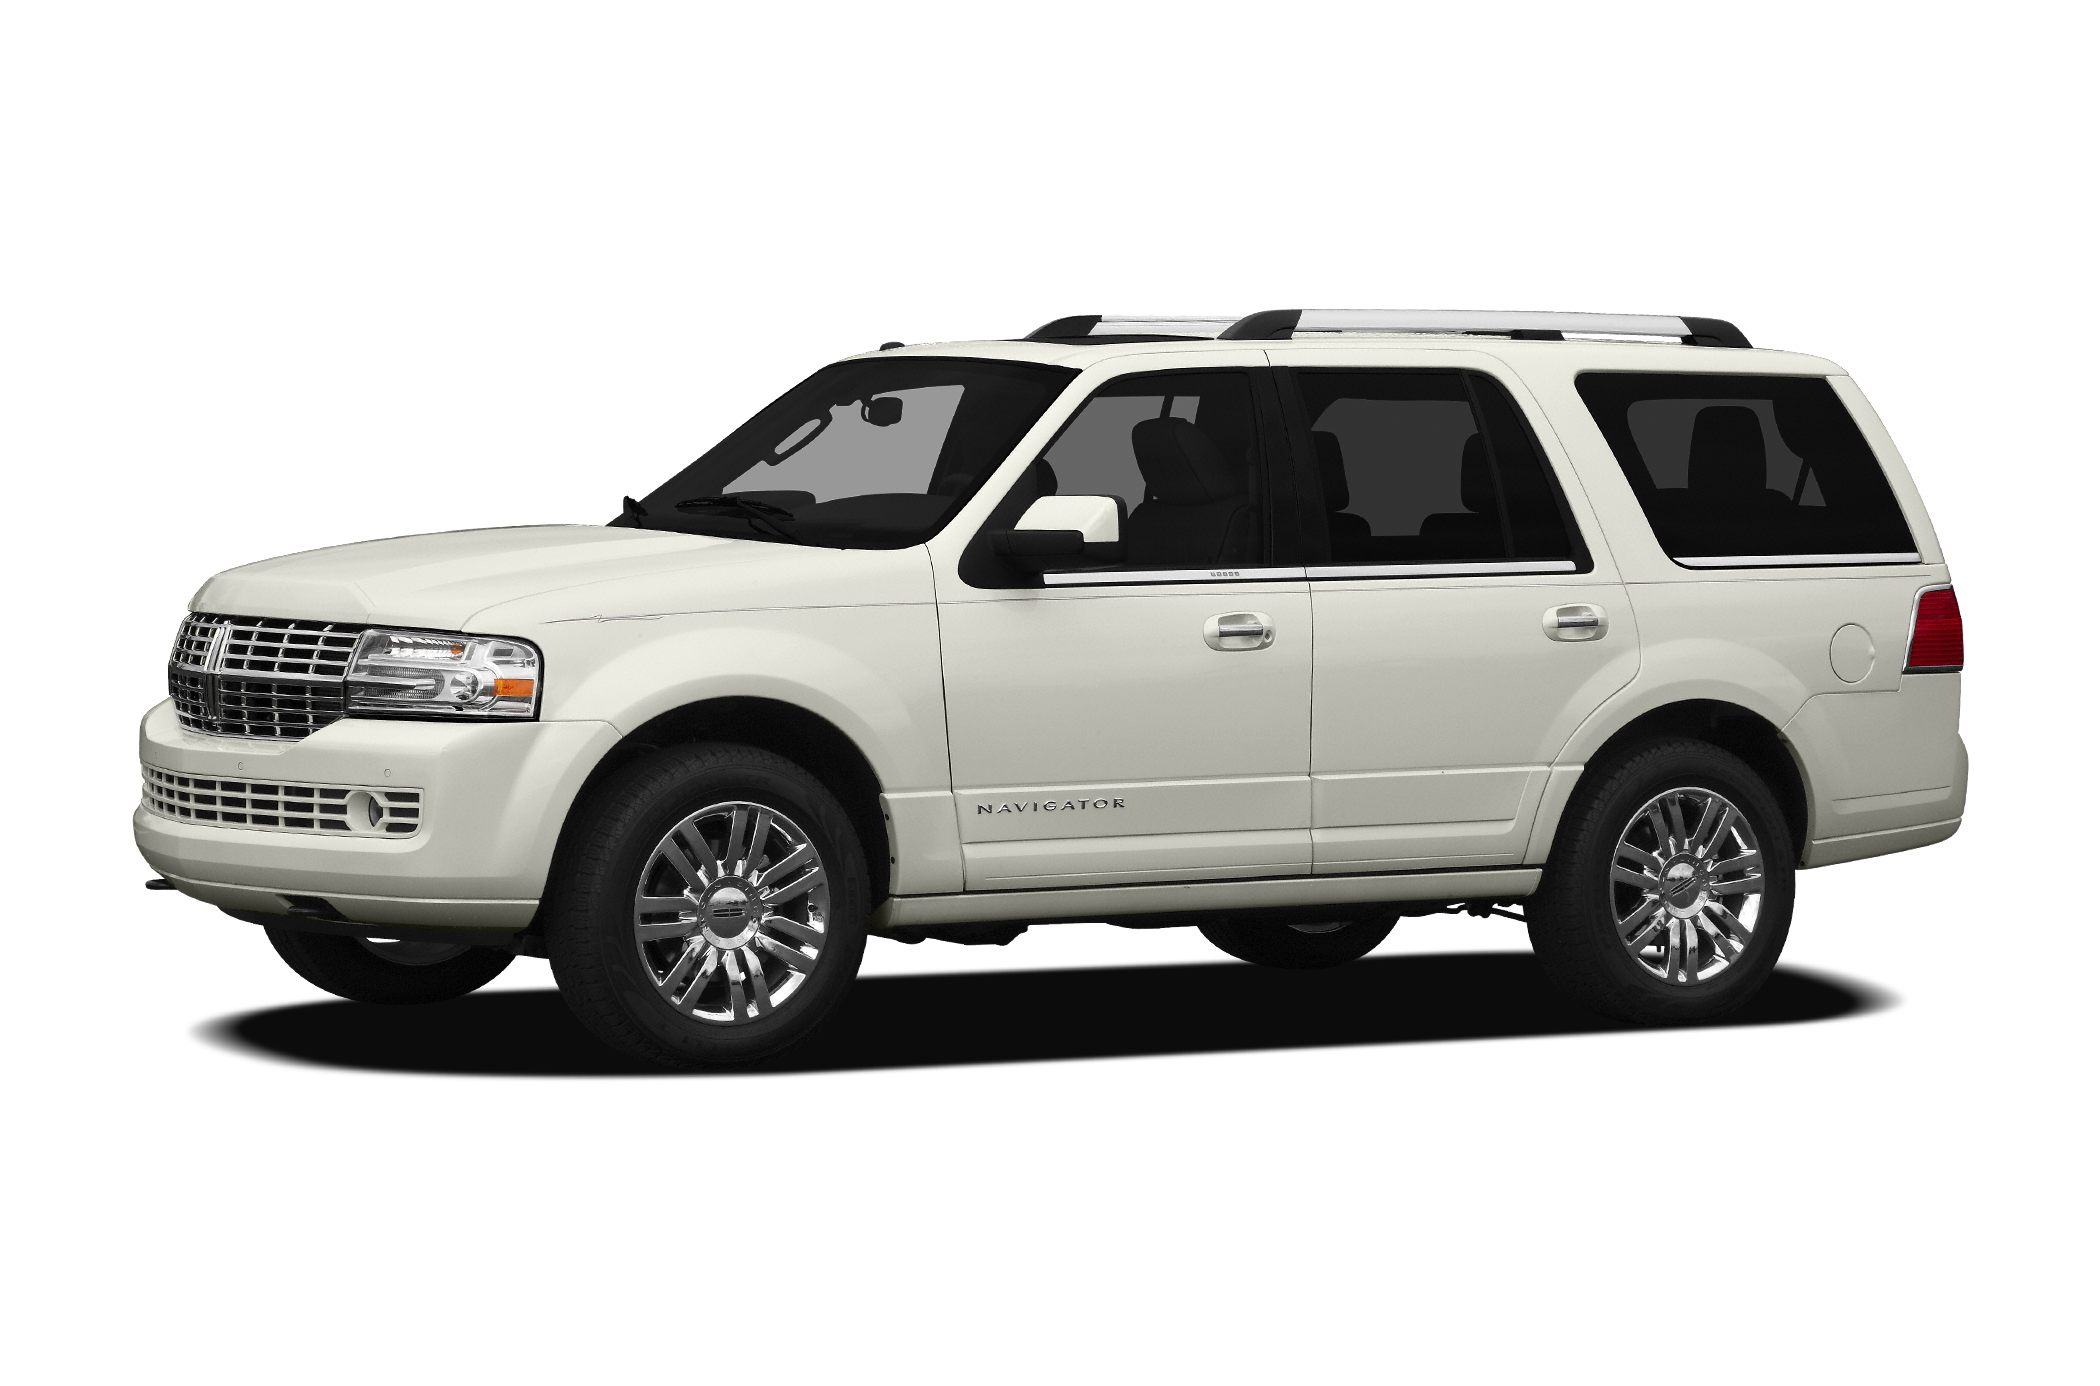 2011 Lincoln Navigator Base SUV for sale in Owatonna for $24,999 with 79,078 miles.